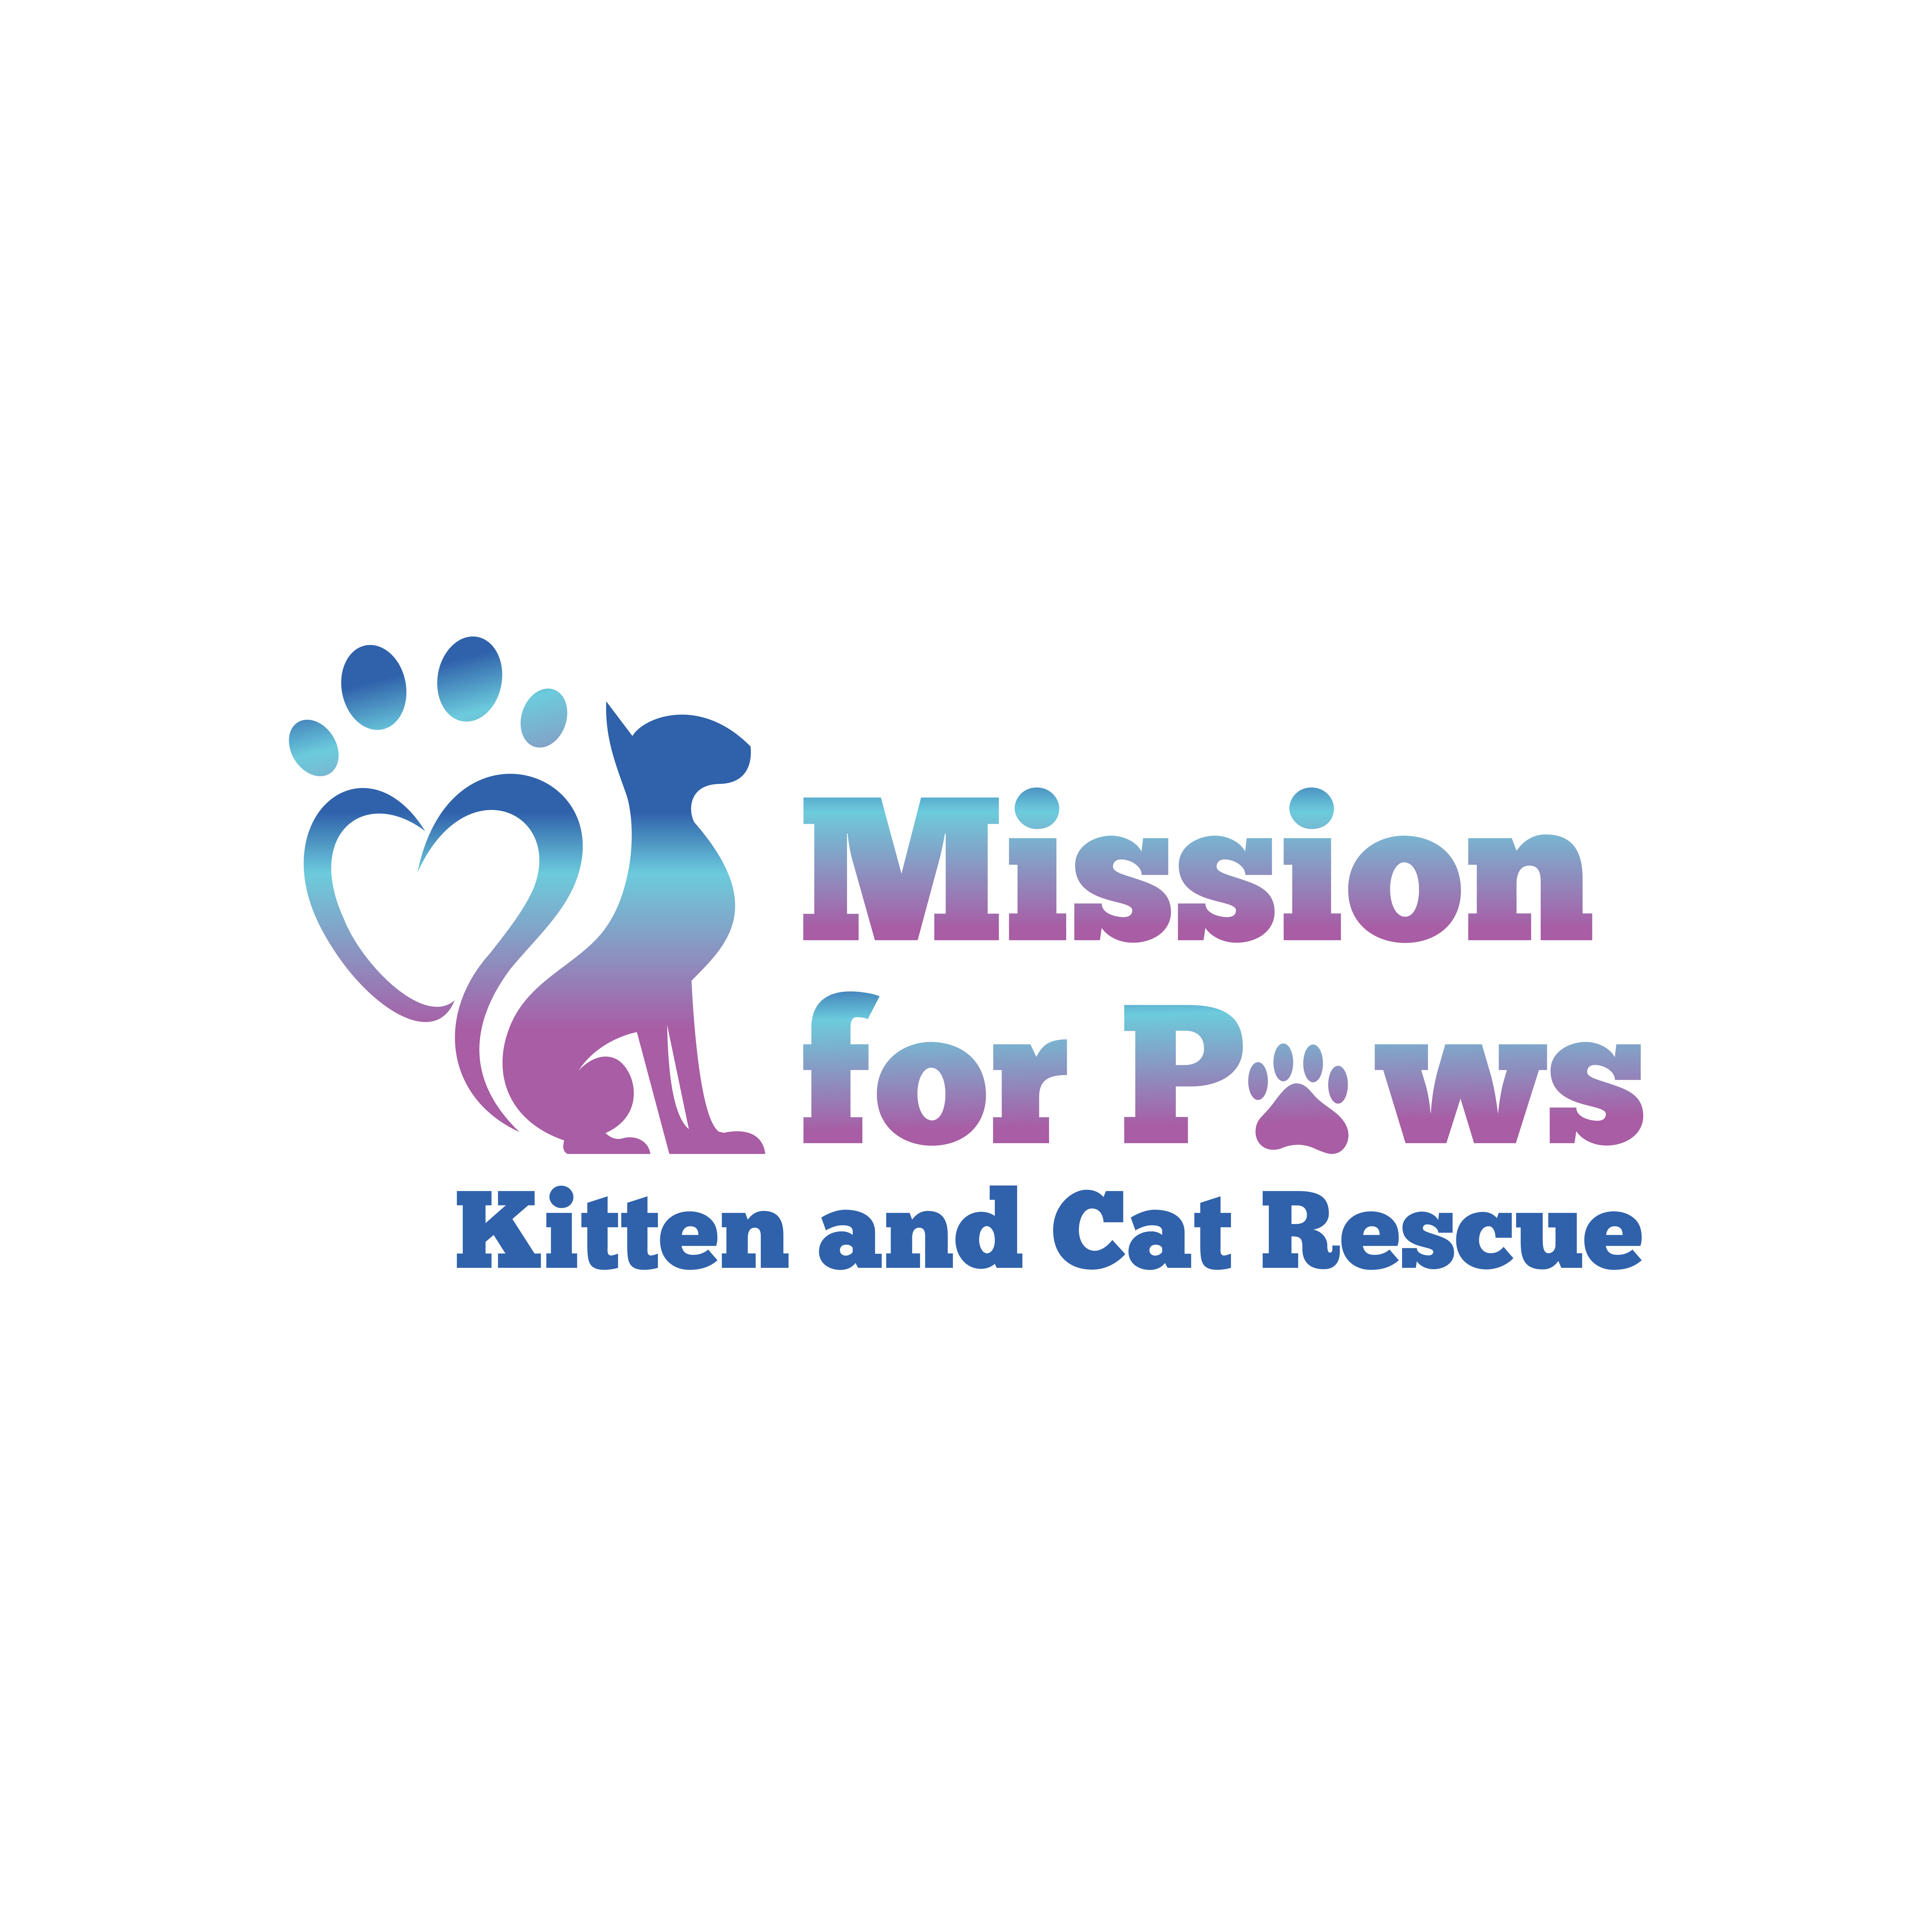 Mission for Paws